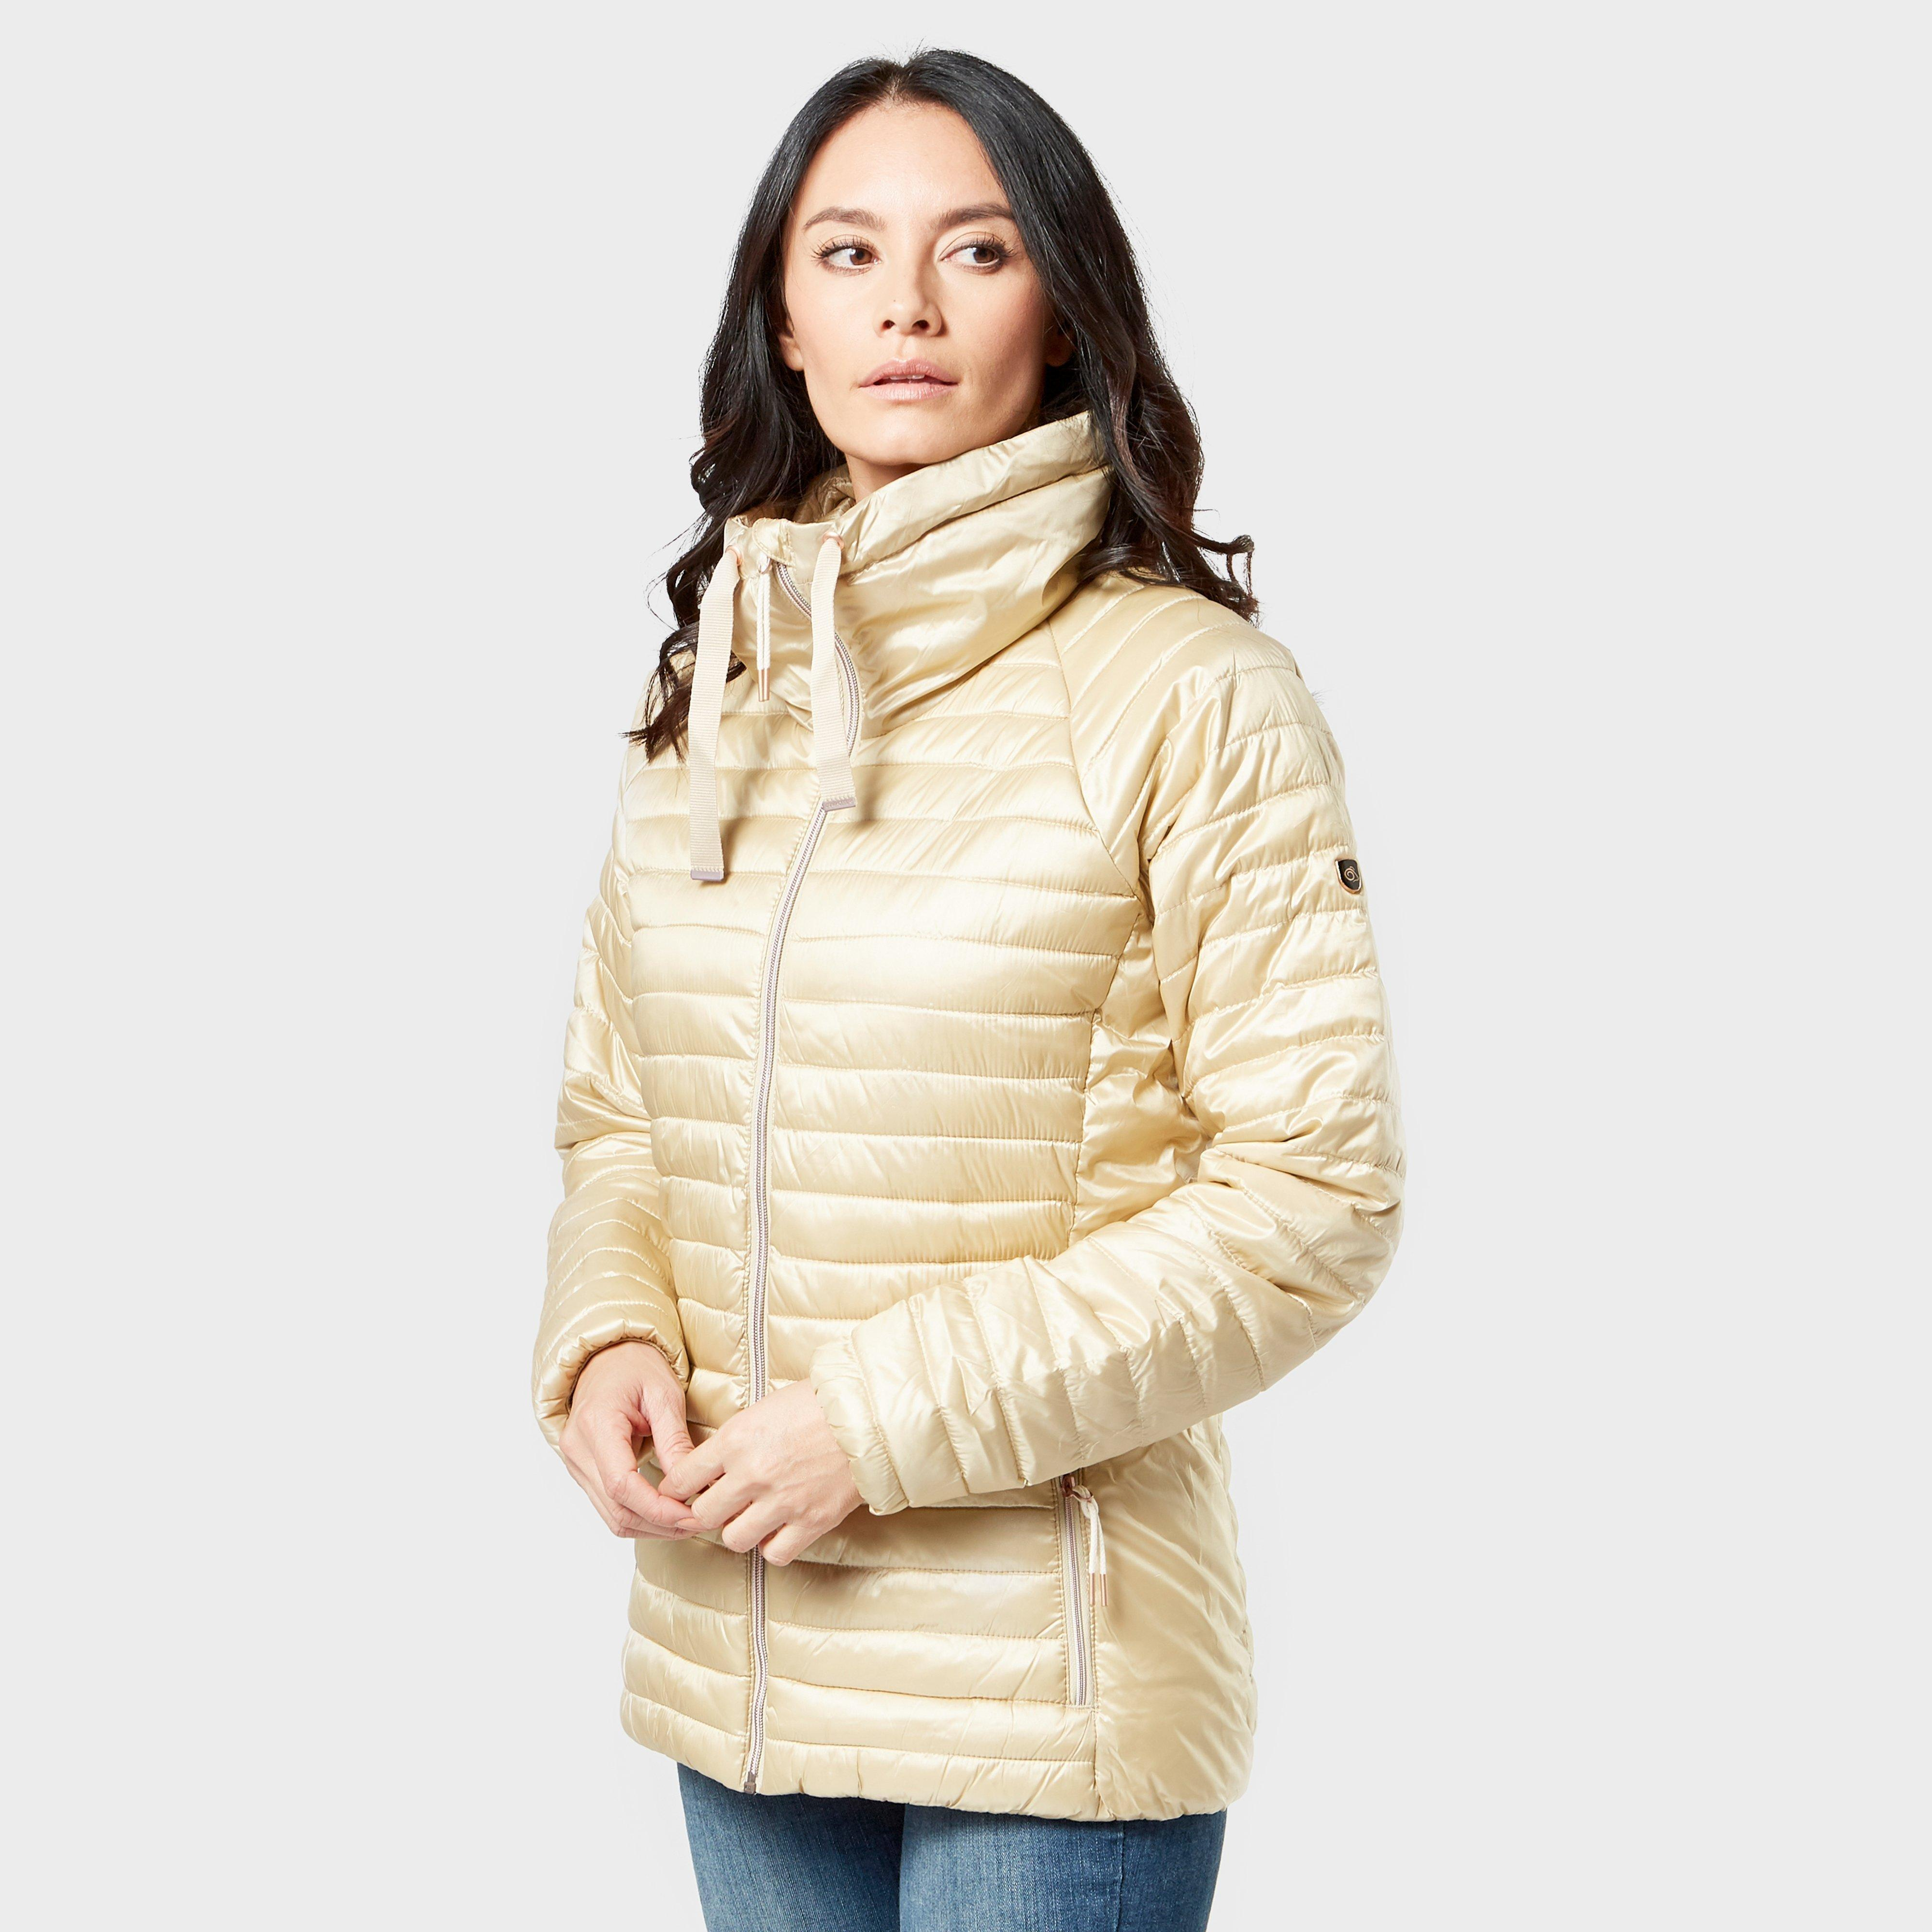 Craghoppers Craghoppers womens Greta Jacket - Gold, Gold